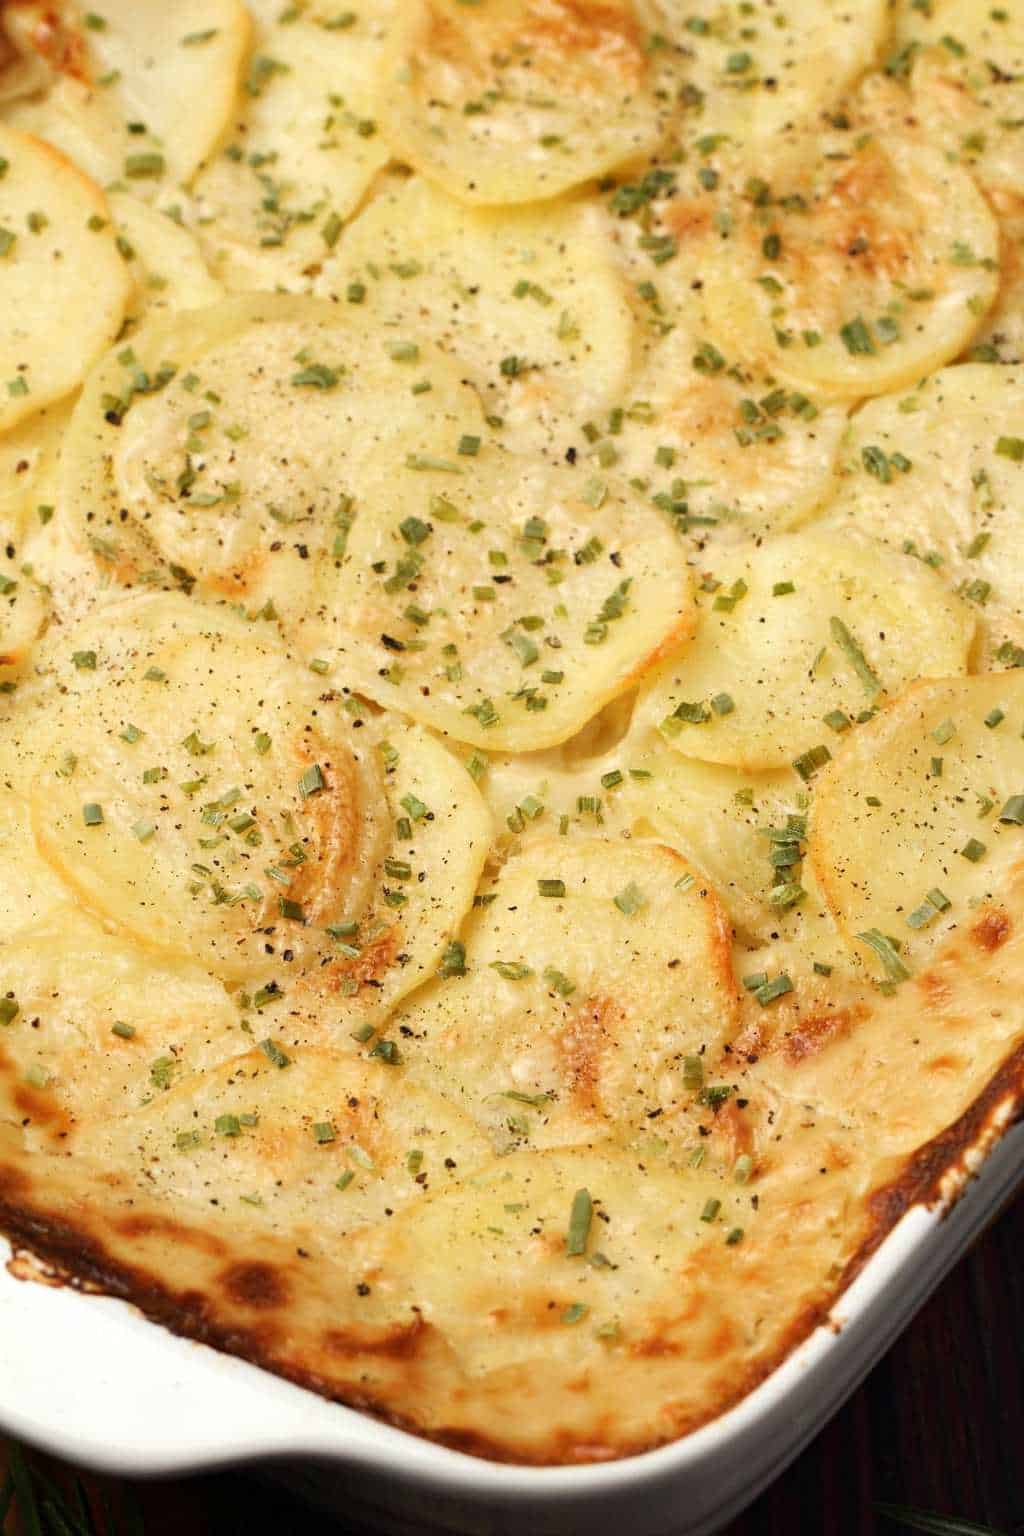 Vegan scalloped potatoes topped with chopped chives in a white dish.